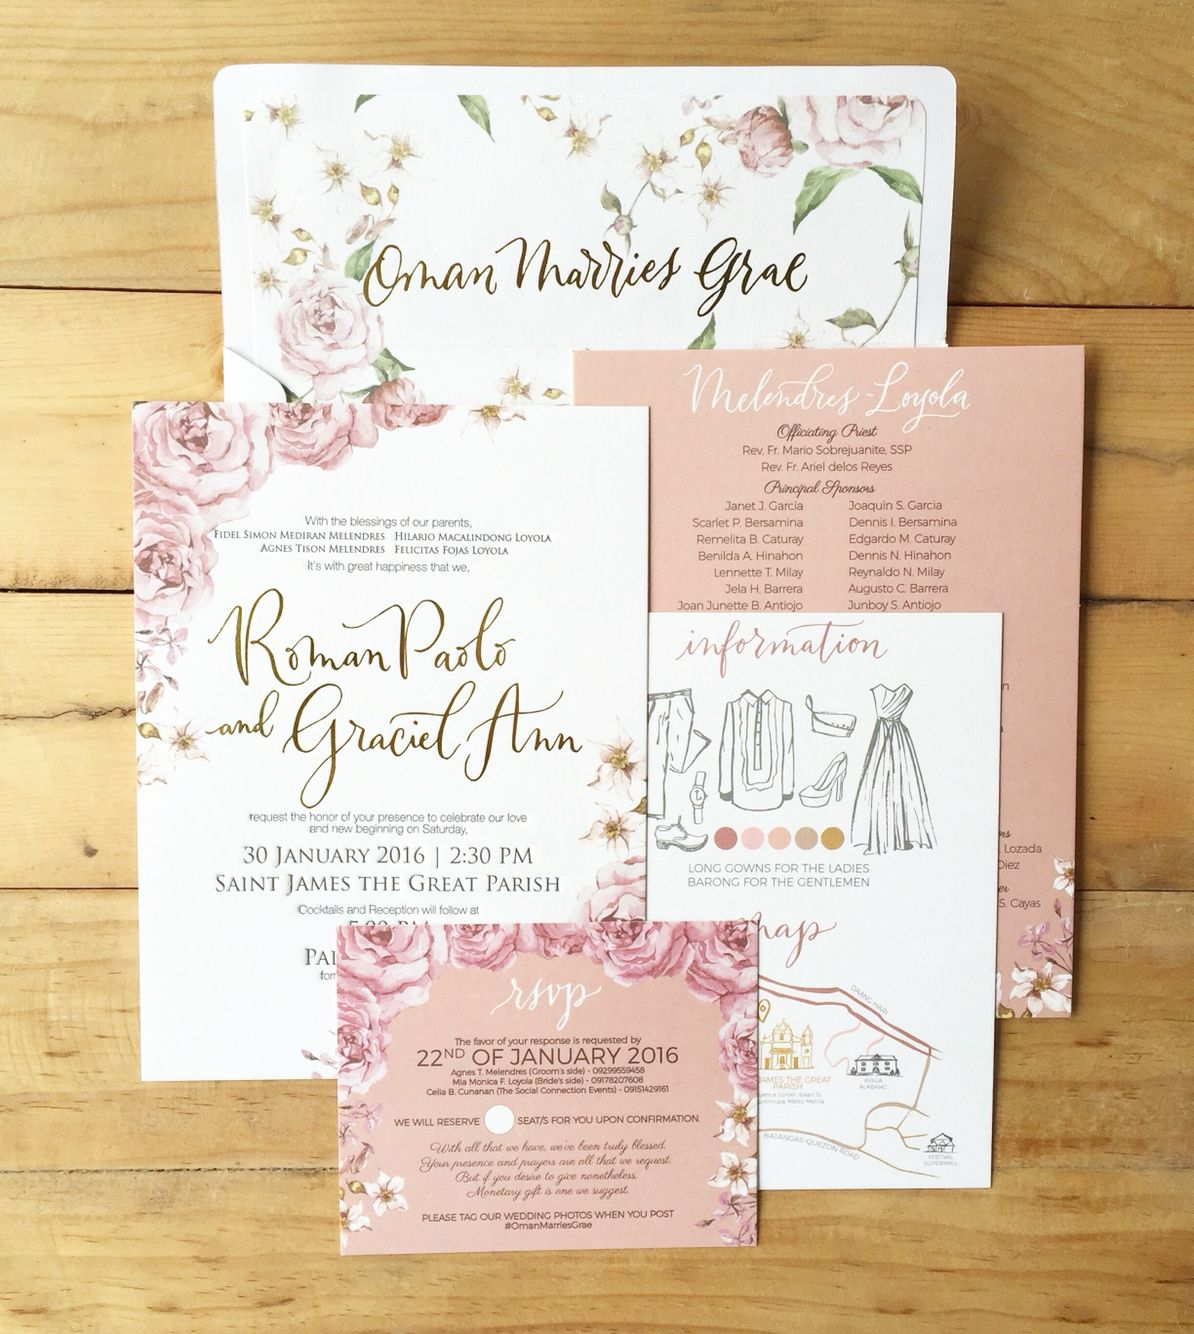 Old Wedding Invitations: Roman Paolo And Graciel Ann Bespoke Suite -- Old Rose